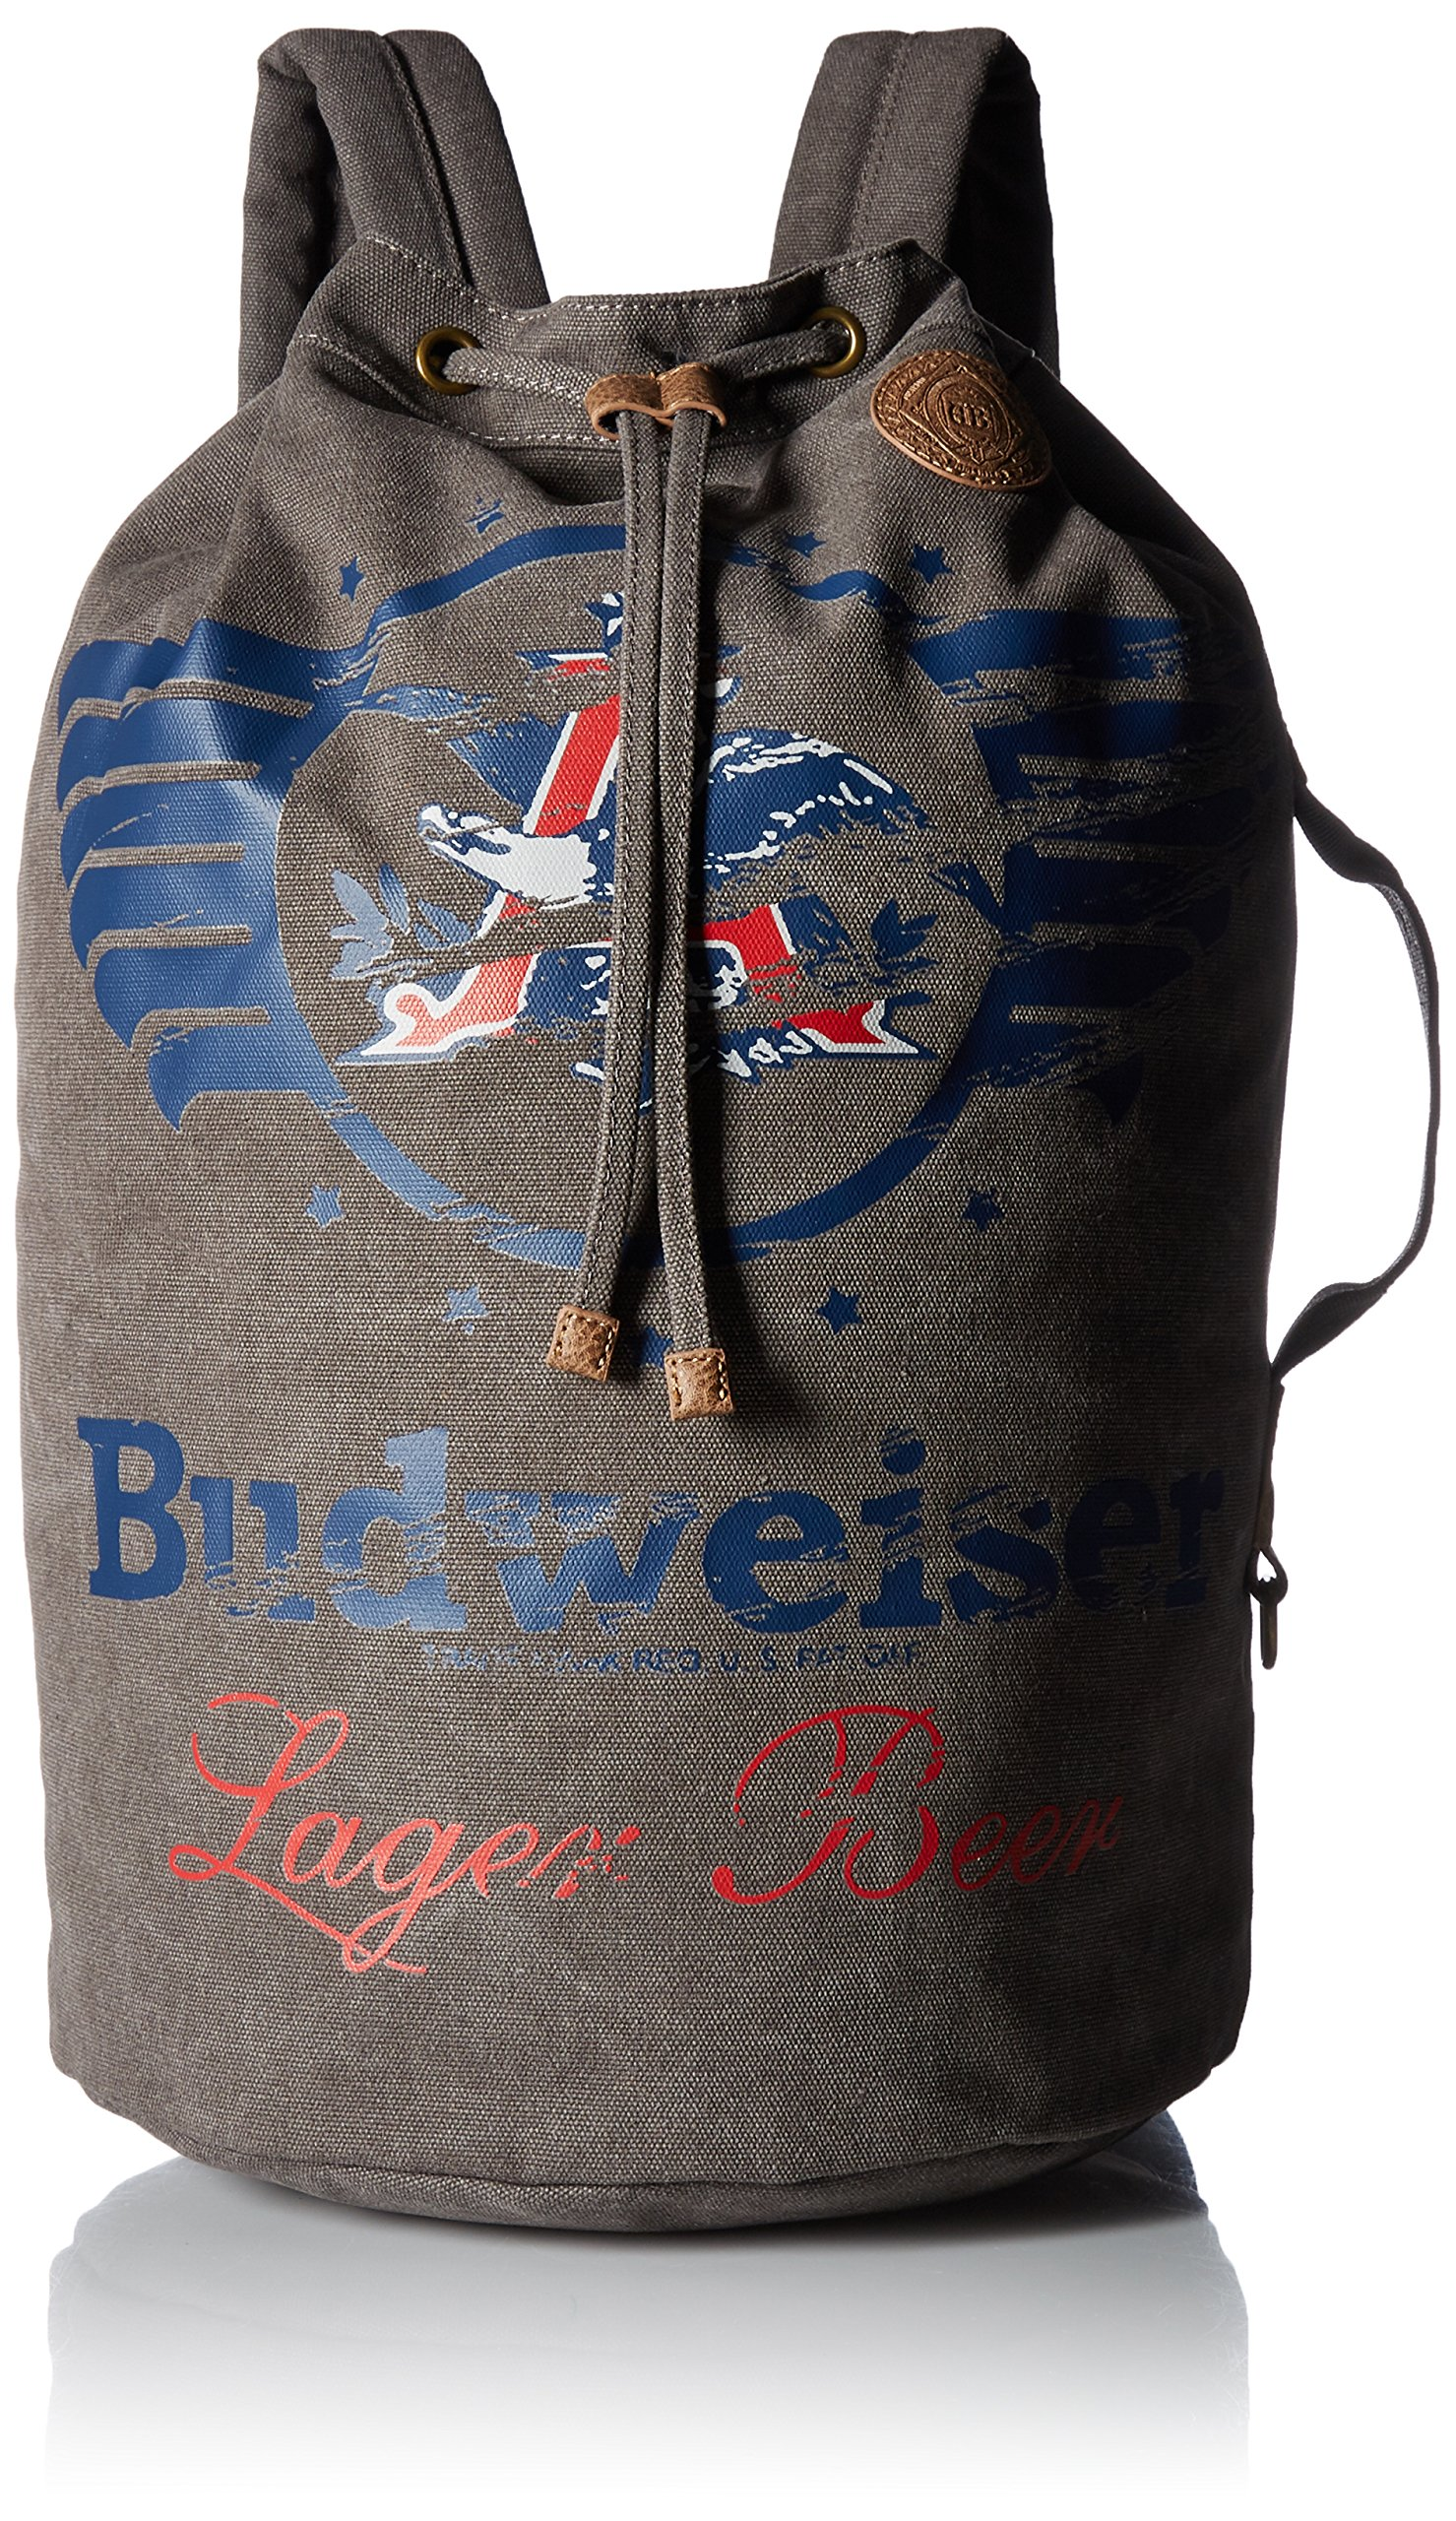 Budweiser by Buxton Men's Eagle Wings Drawstring Bucket Bag Accessory, grey,